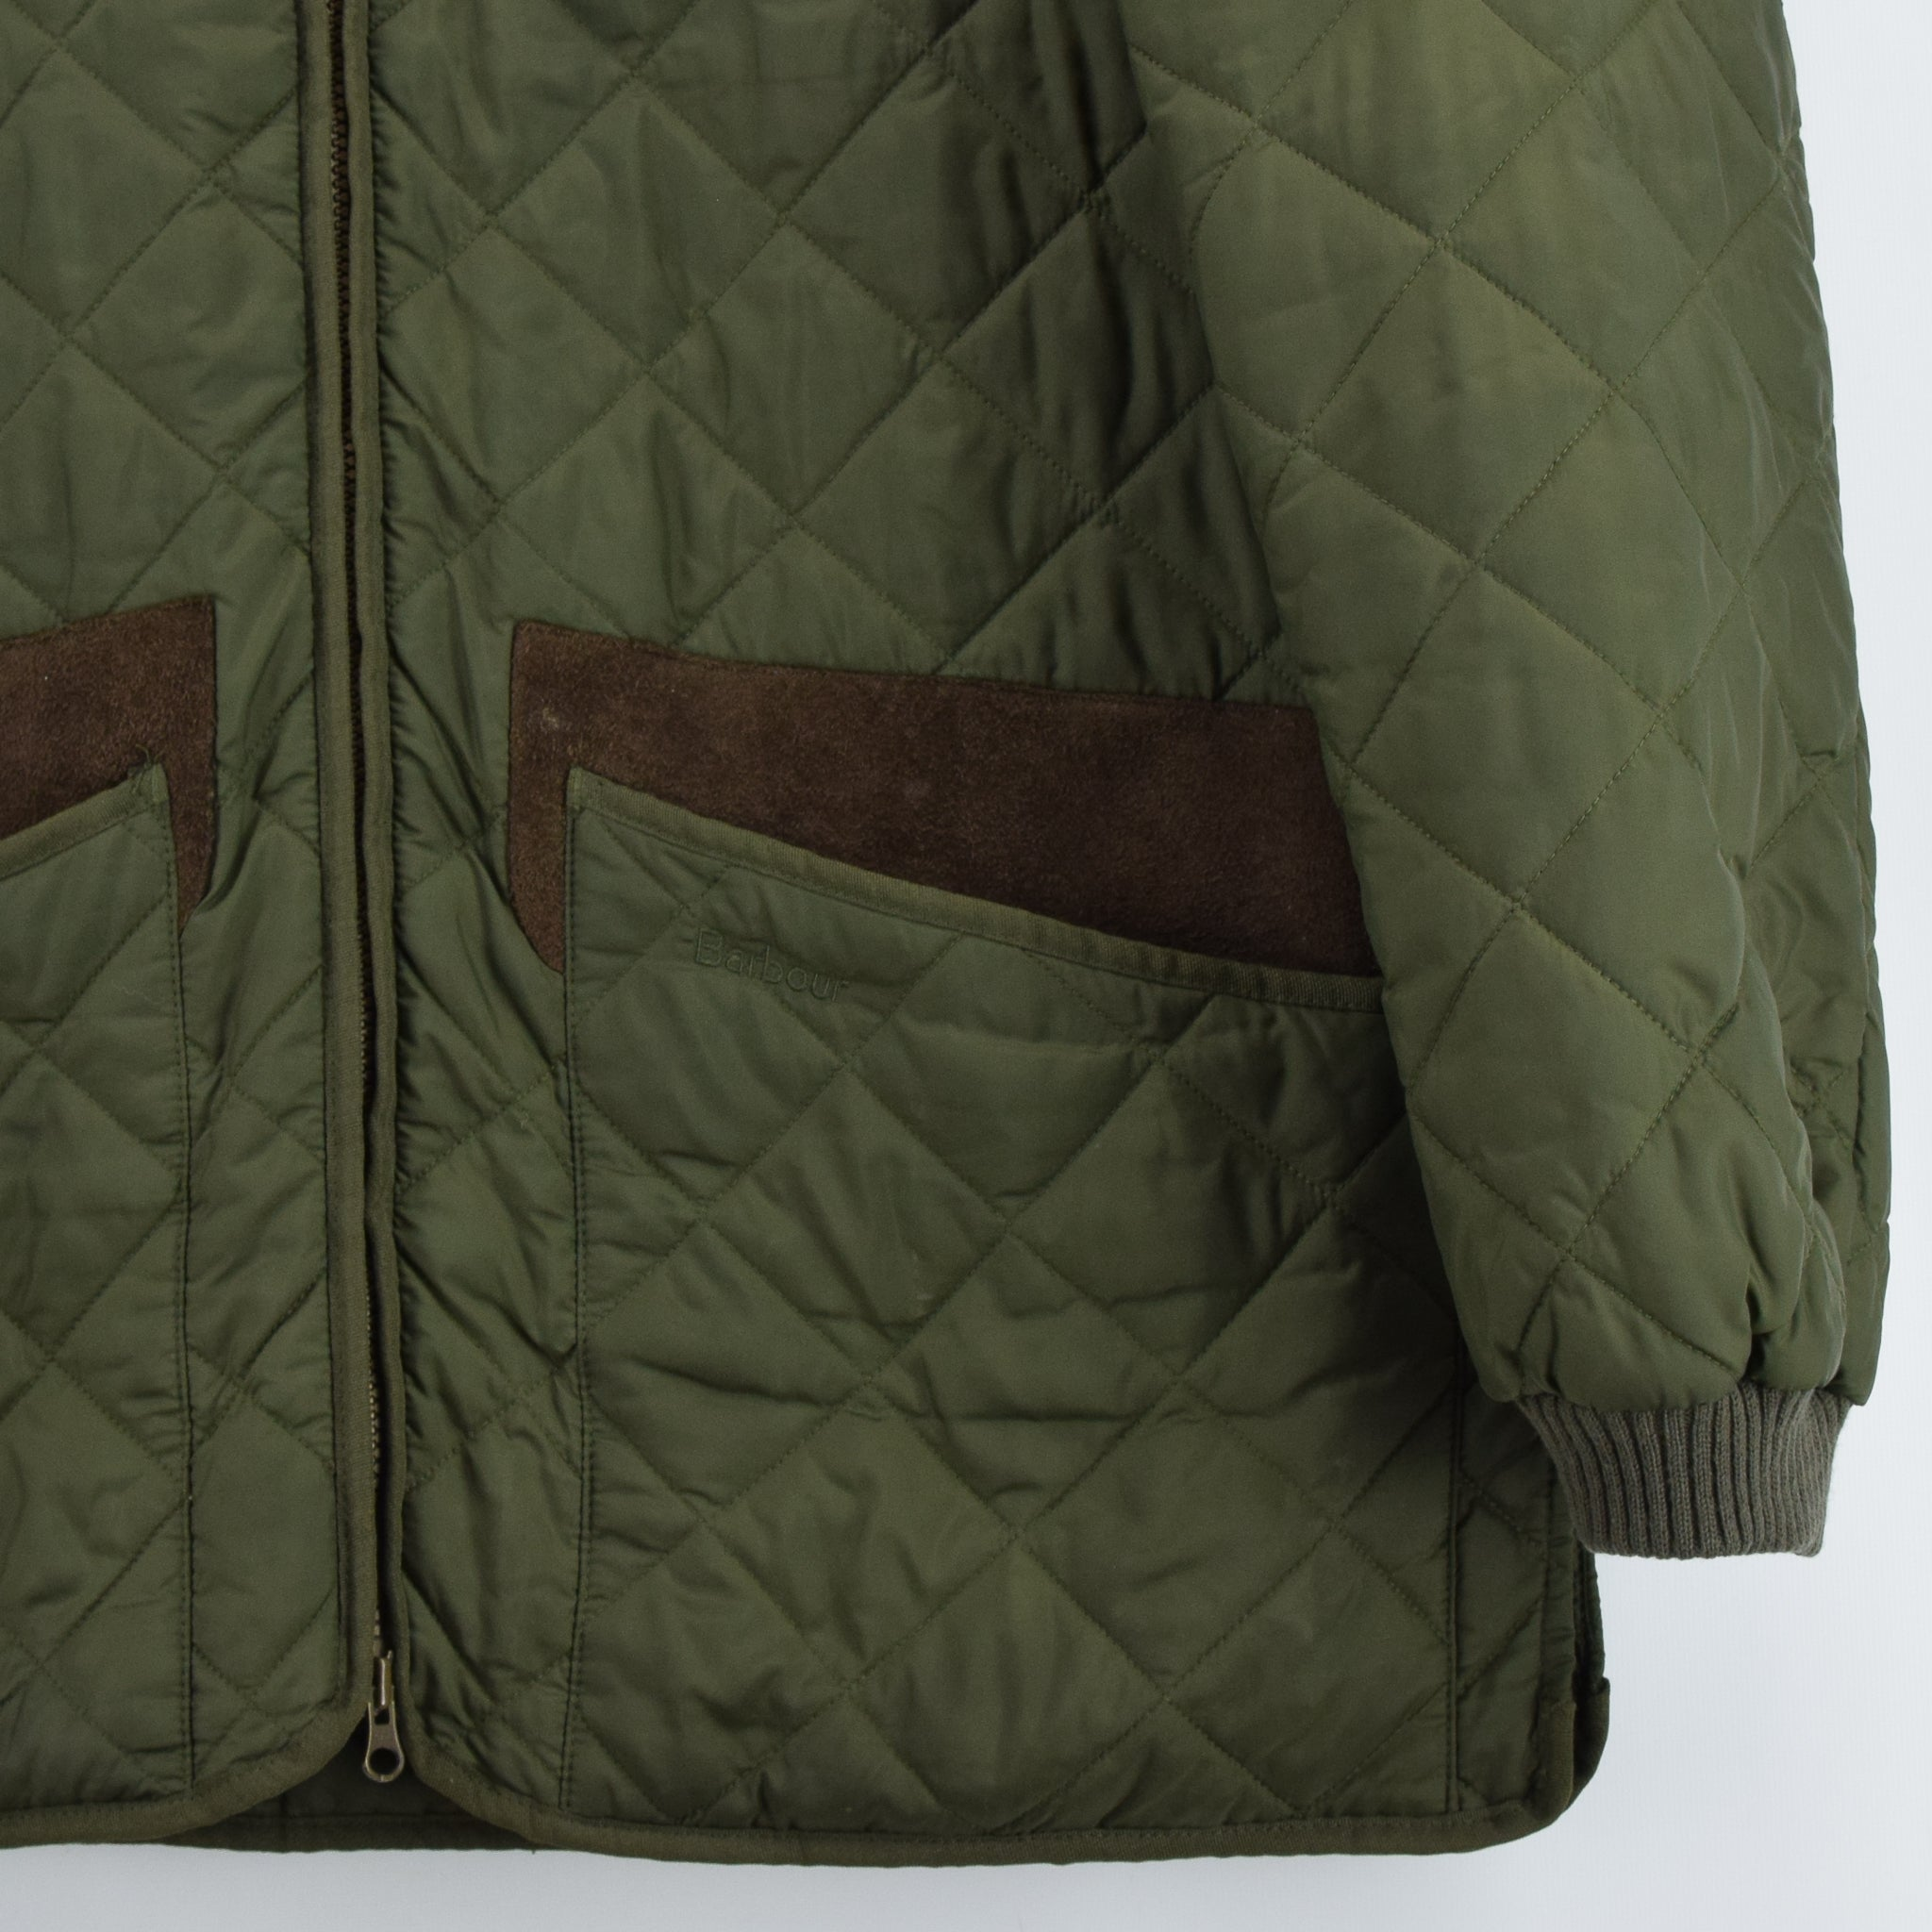 Barbour New Keeperwear Hunting Green Quilted Shooting Jacket Suede Patches M front hem